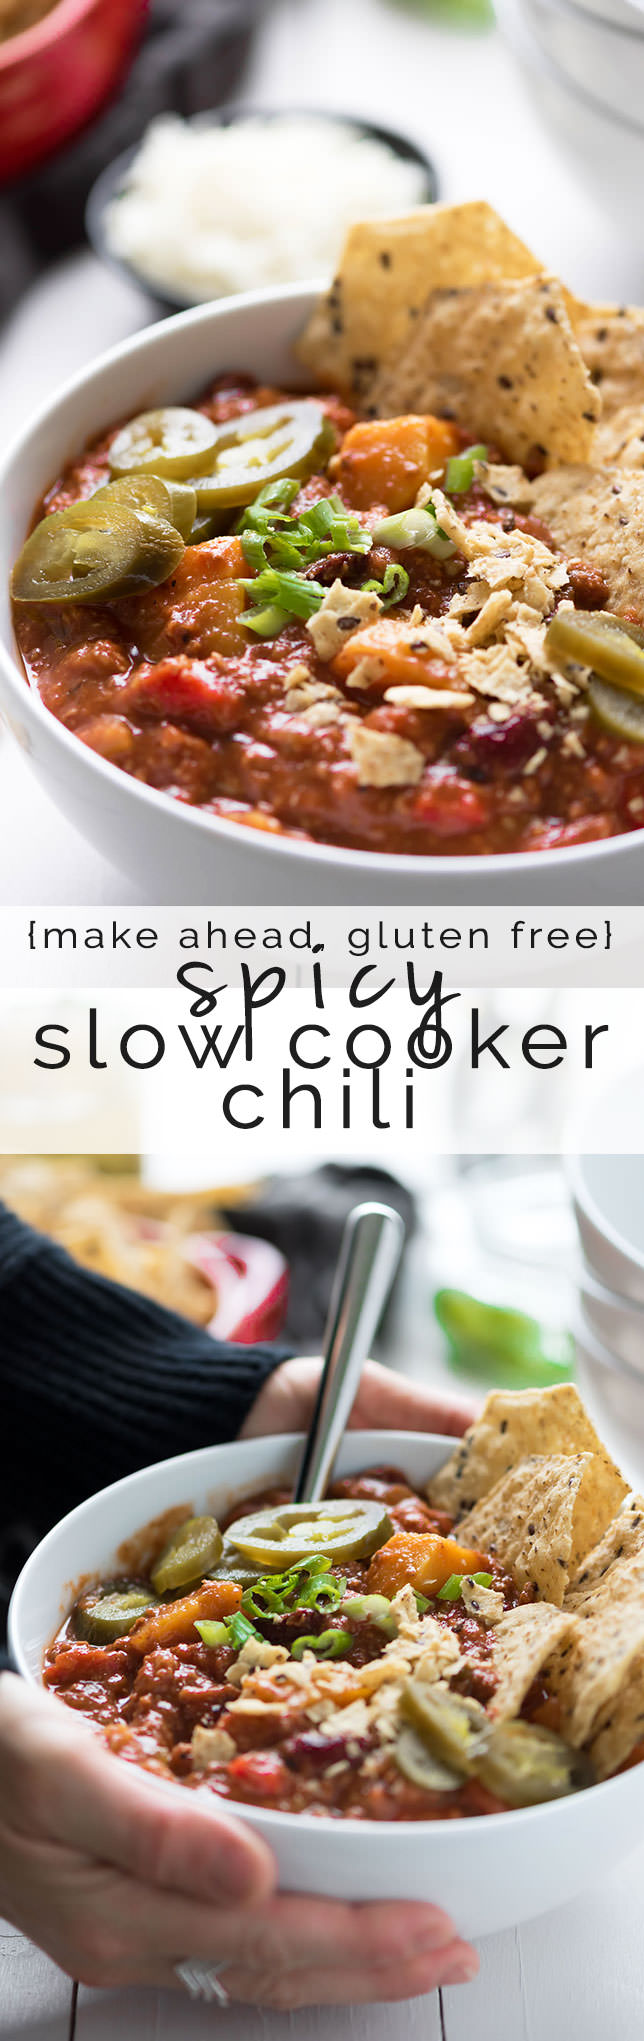 Easy Spicy Healthy Slow Cooker Chili Recipe, Chipotle Ground Turkey ...